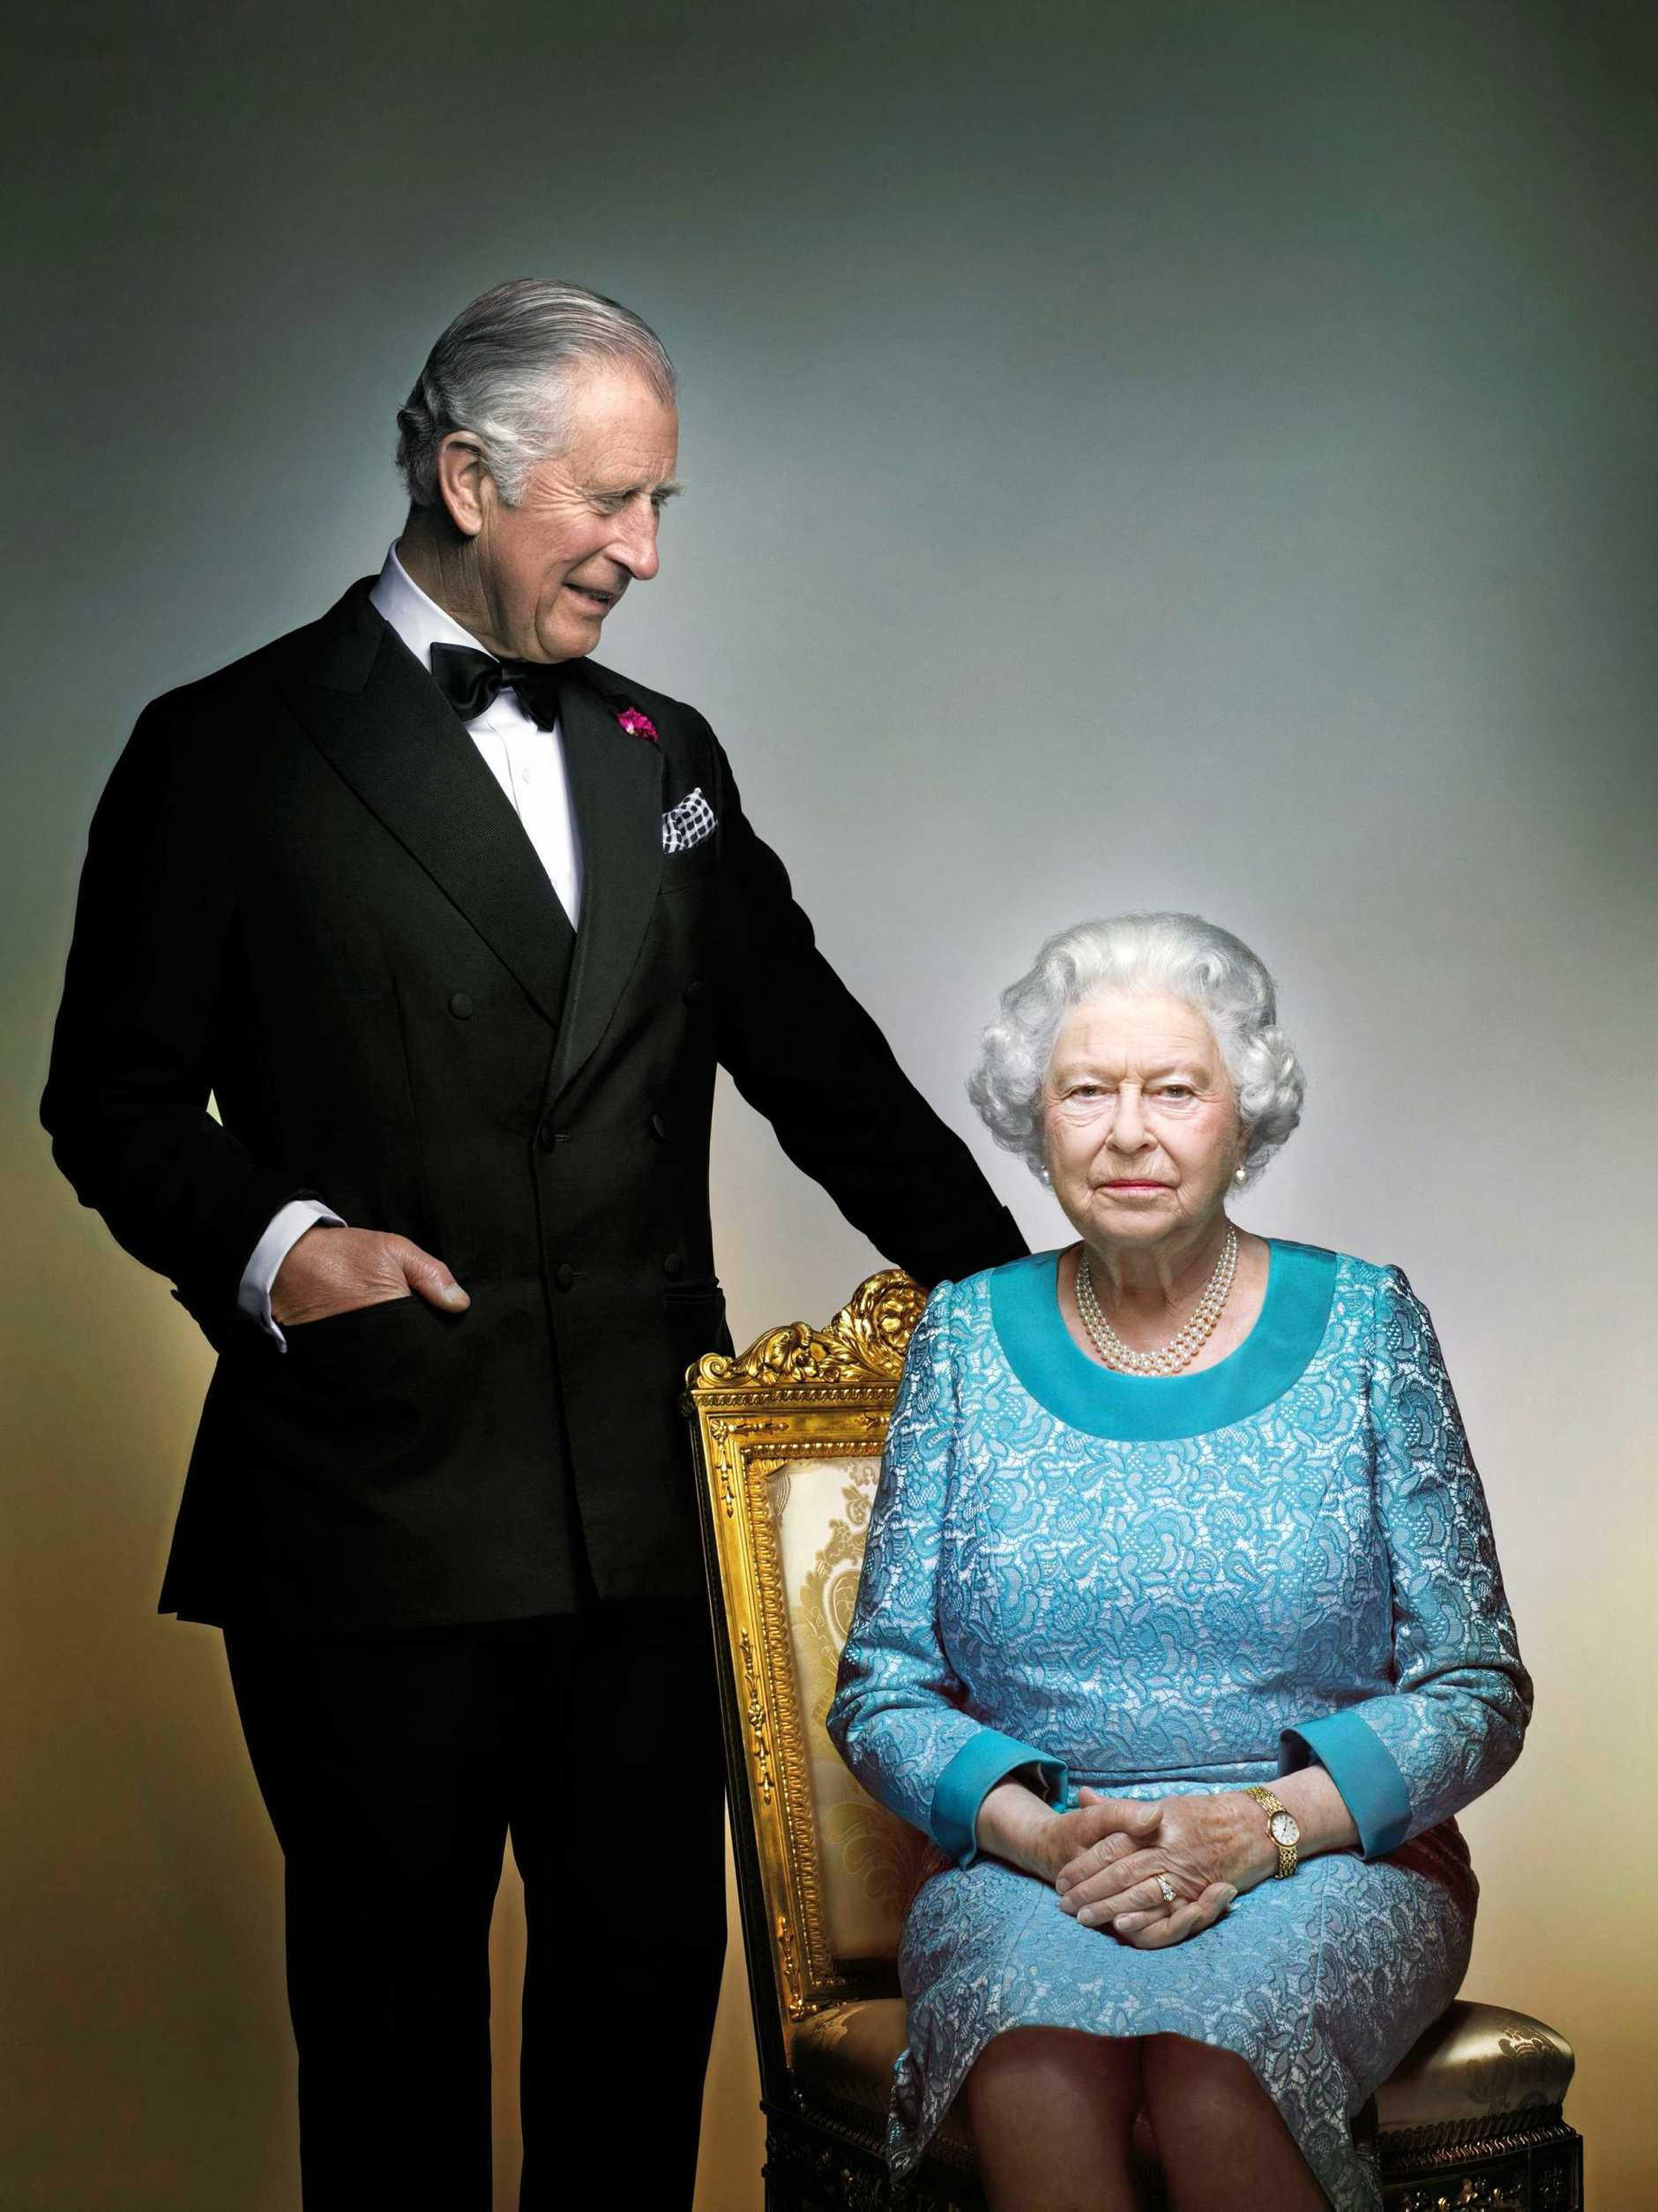 This photograph taken by Nick Knight is a portrait of Britain's Queen Elizabeth II and Prince Charles, taken in the White Drawing Room at Windsor Castle, England in May 2016, prior to the final night of The Queen's 90th Birthday Celebrations at the Royal Windsor Horse Pageant, to mark the end of the year of celebrations for The Queen's 90th birthday. (2016 Nick Knight)